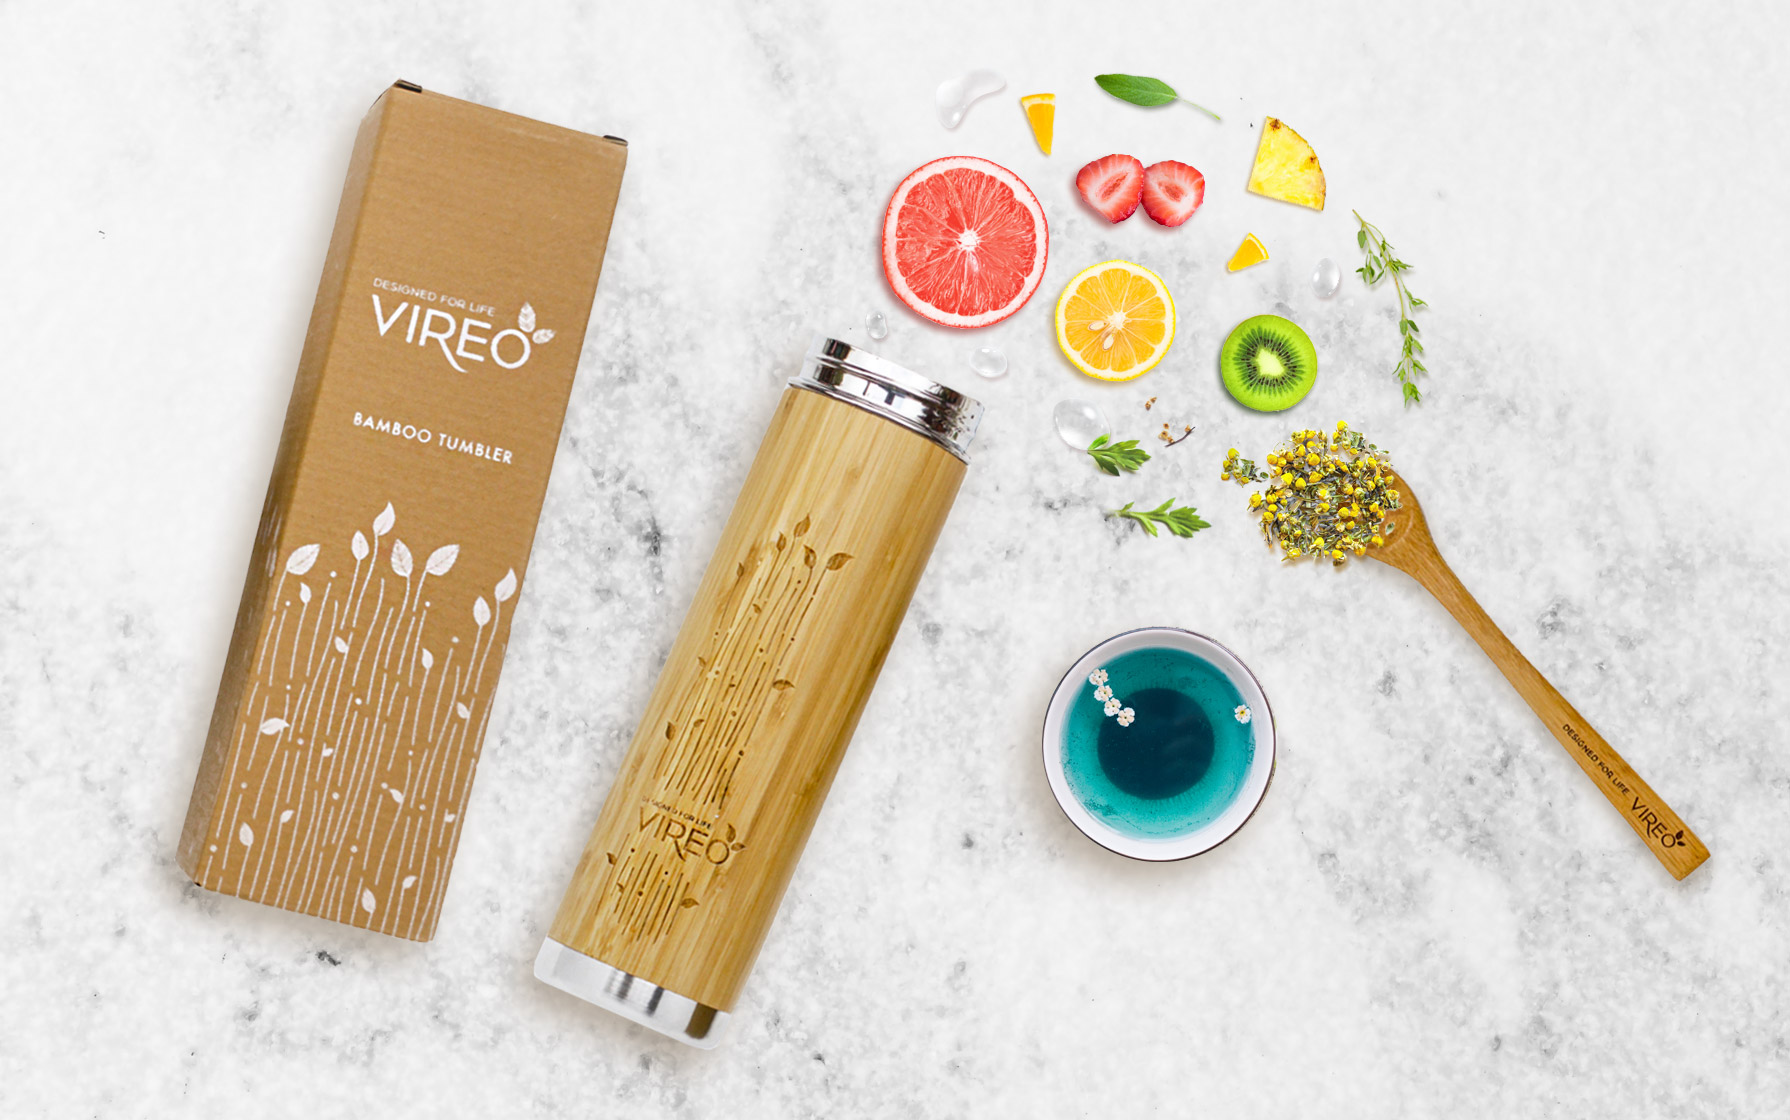 bamboo flask and packaging design